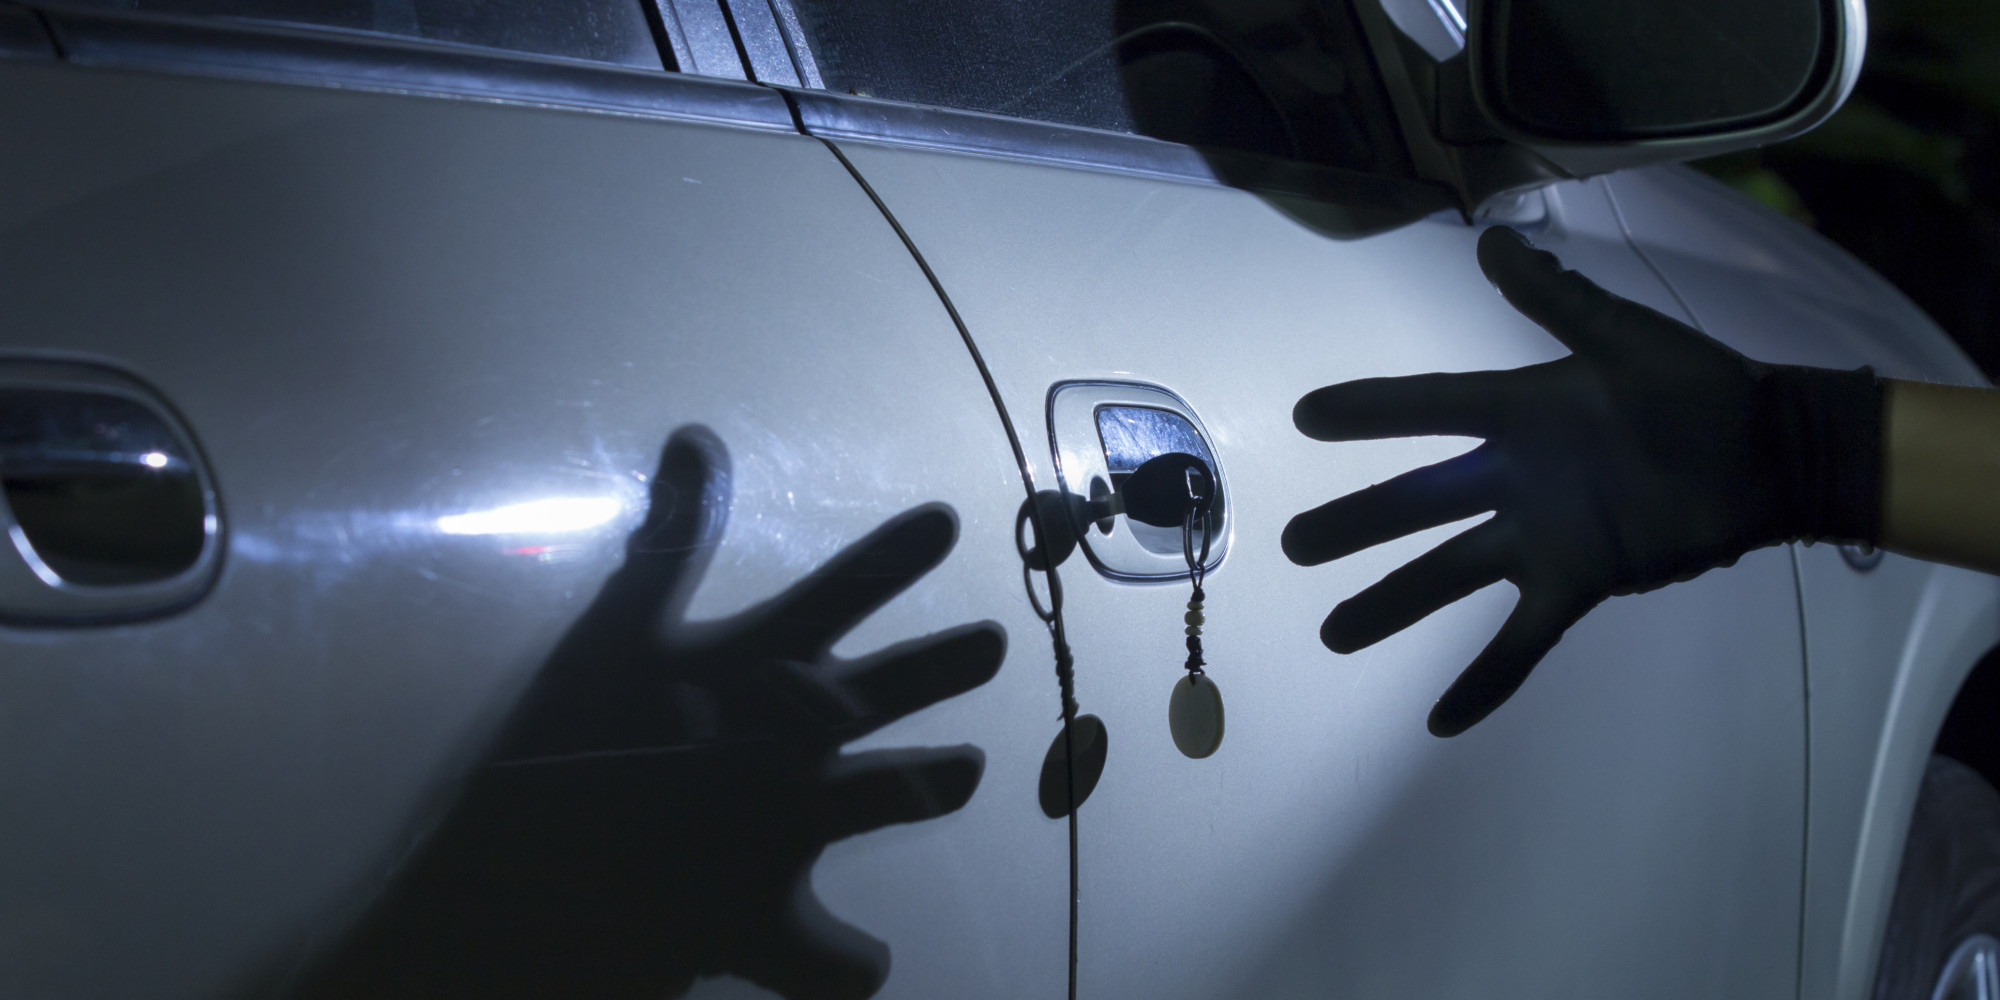 Livingston County arrest connected to auto theft case